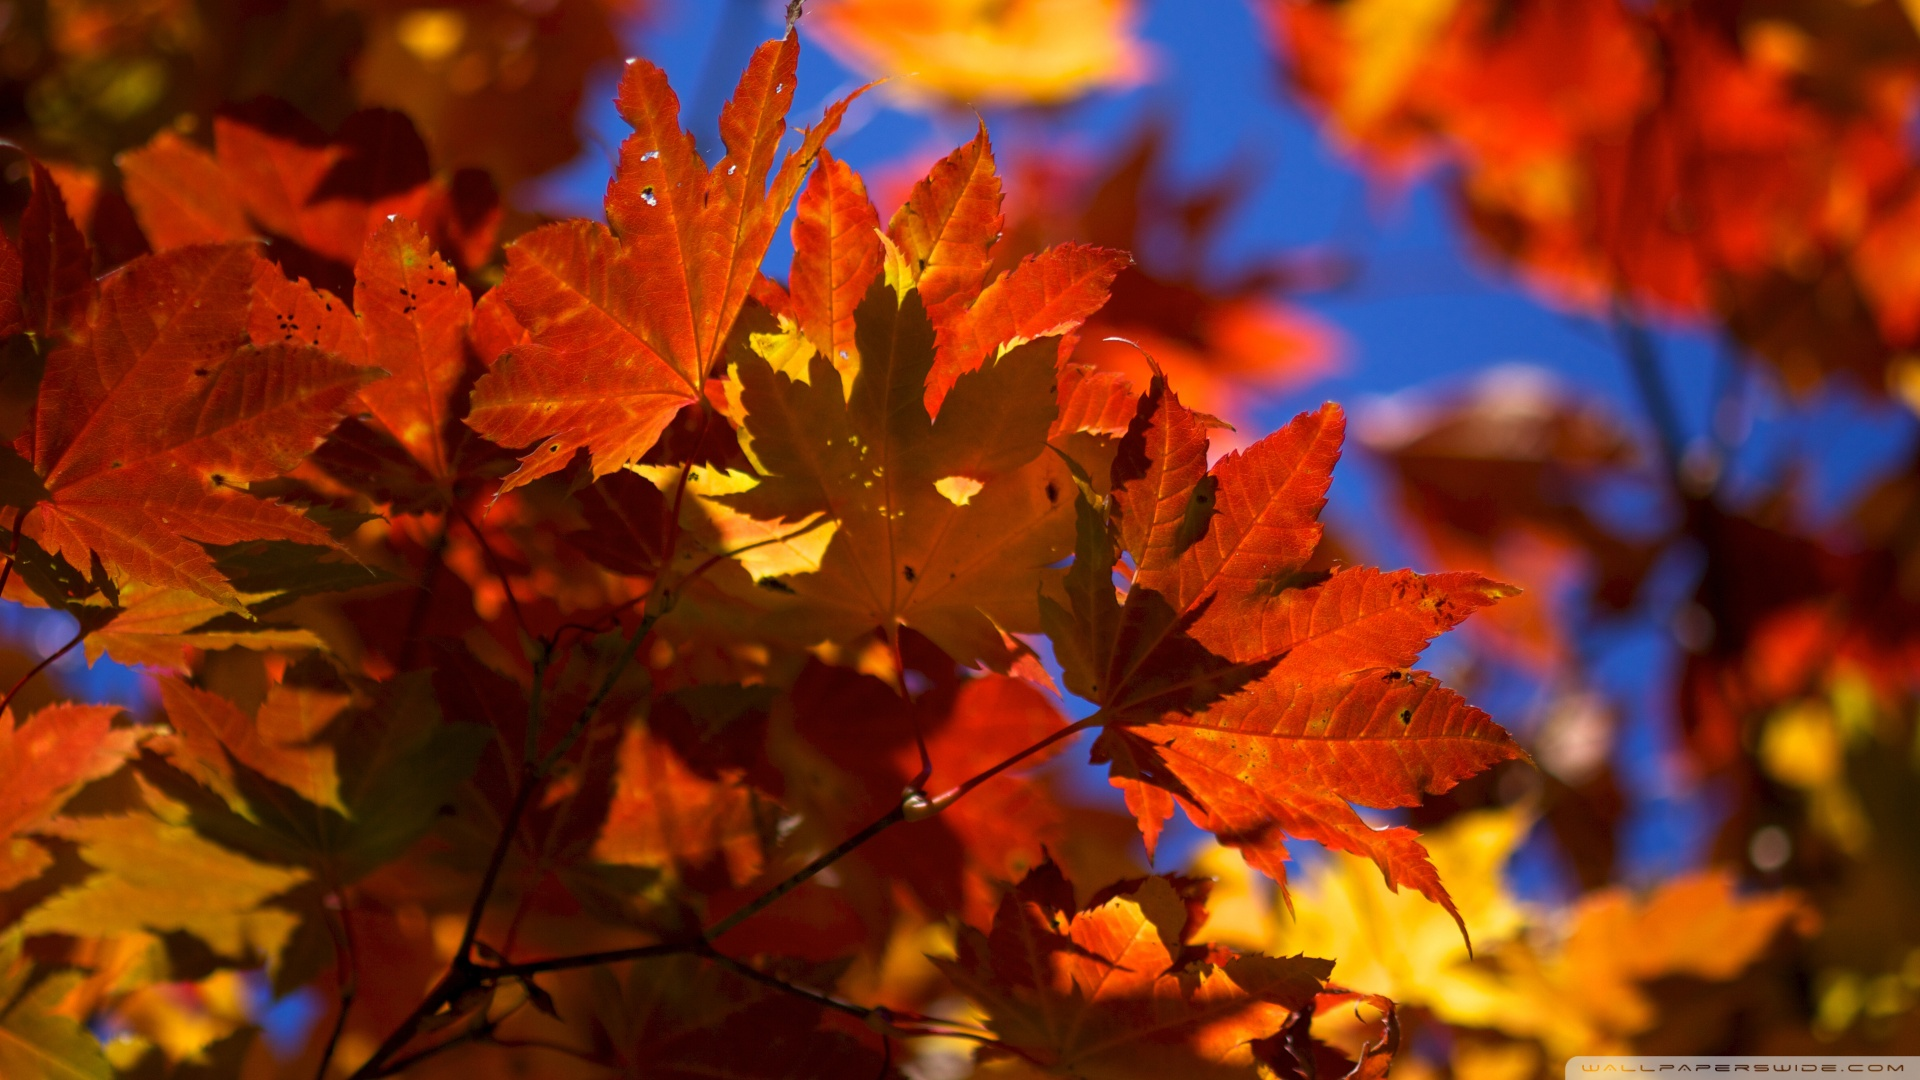 autumn leaves wallpapers high quality download free